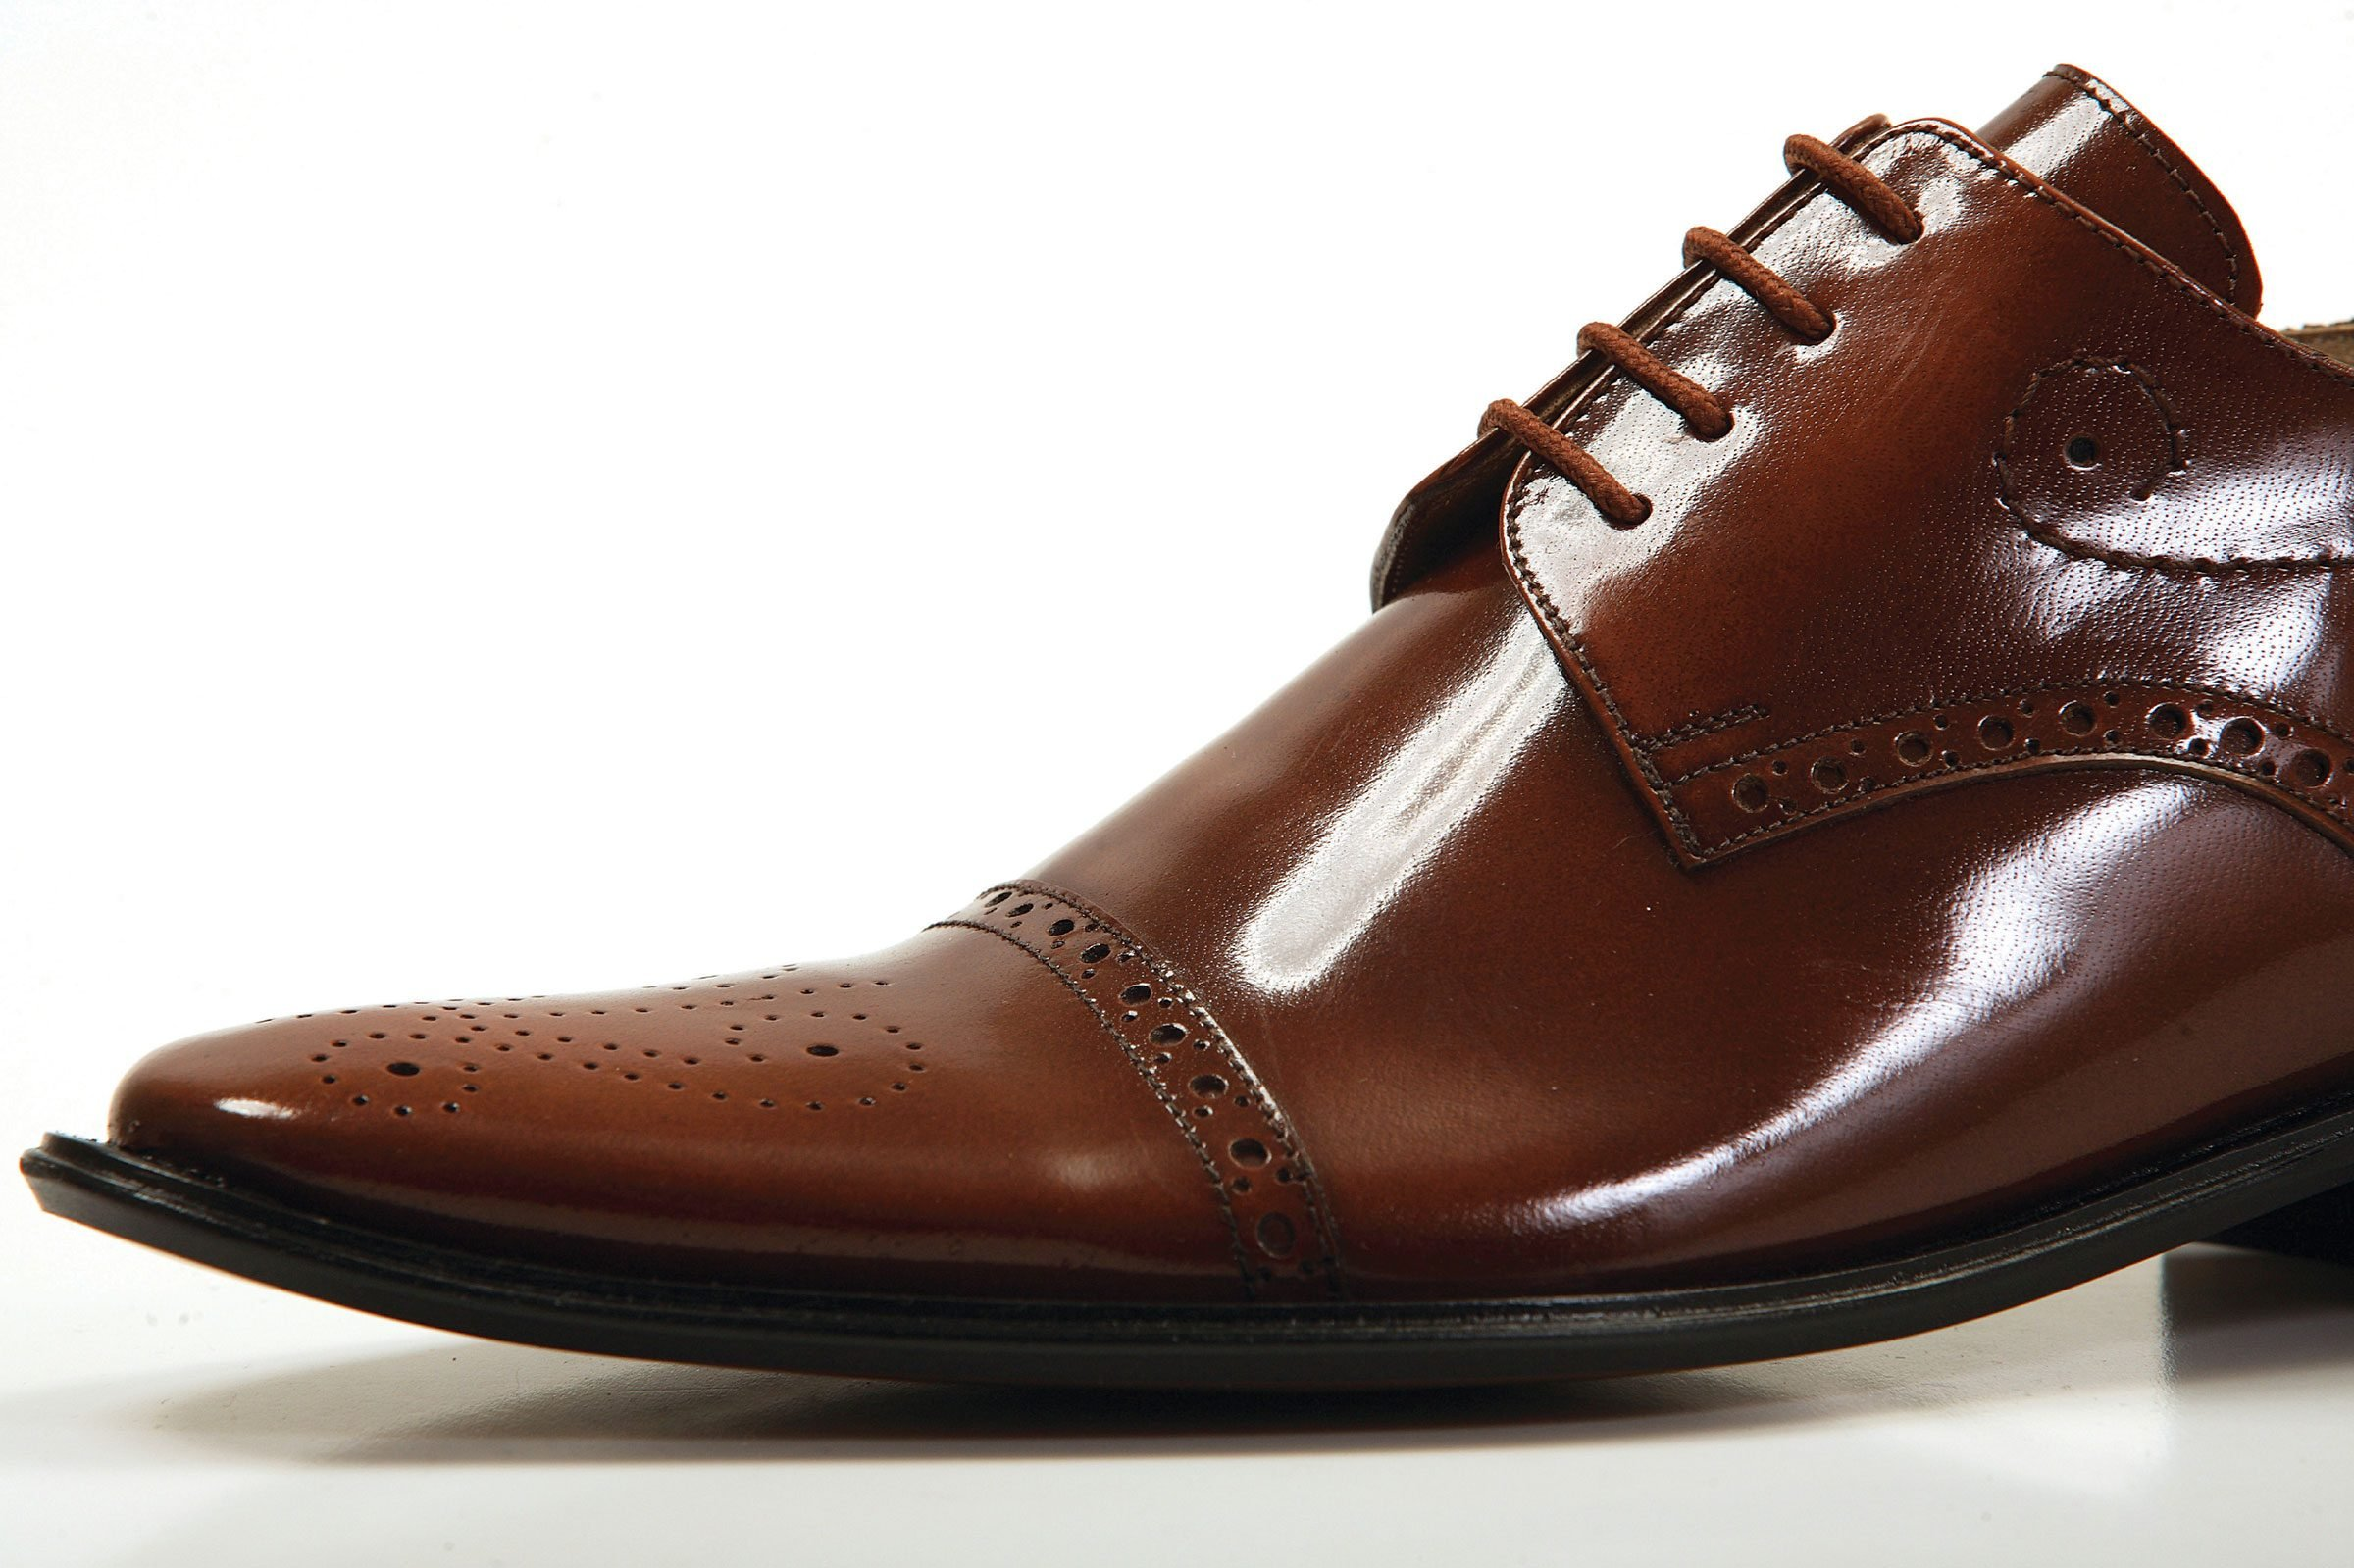 How To Fix Noisy Leather Shoes